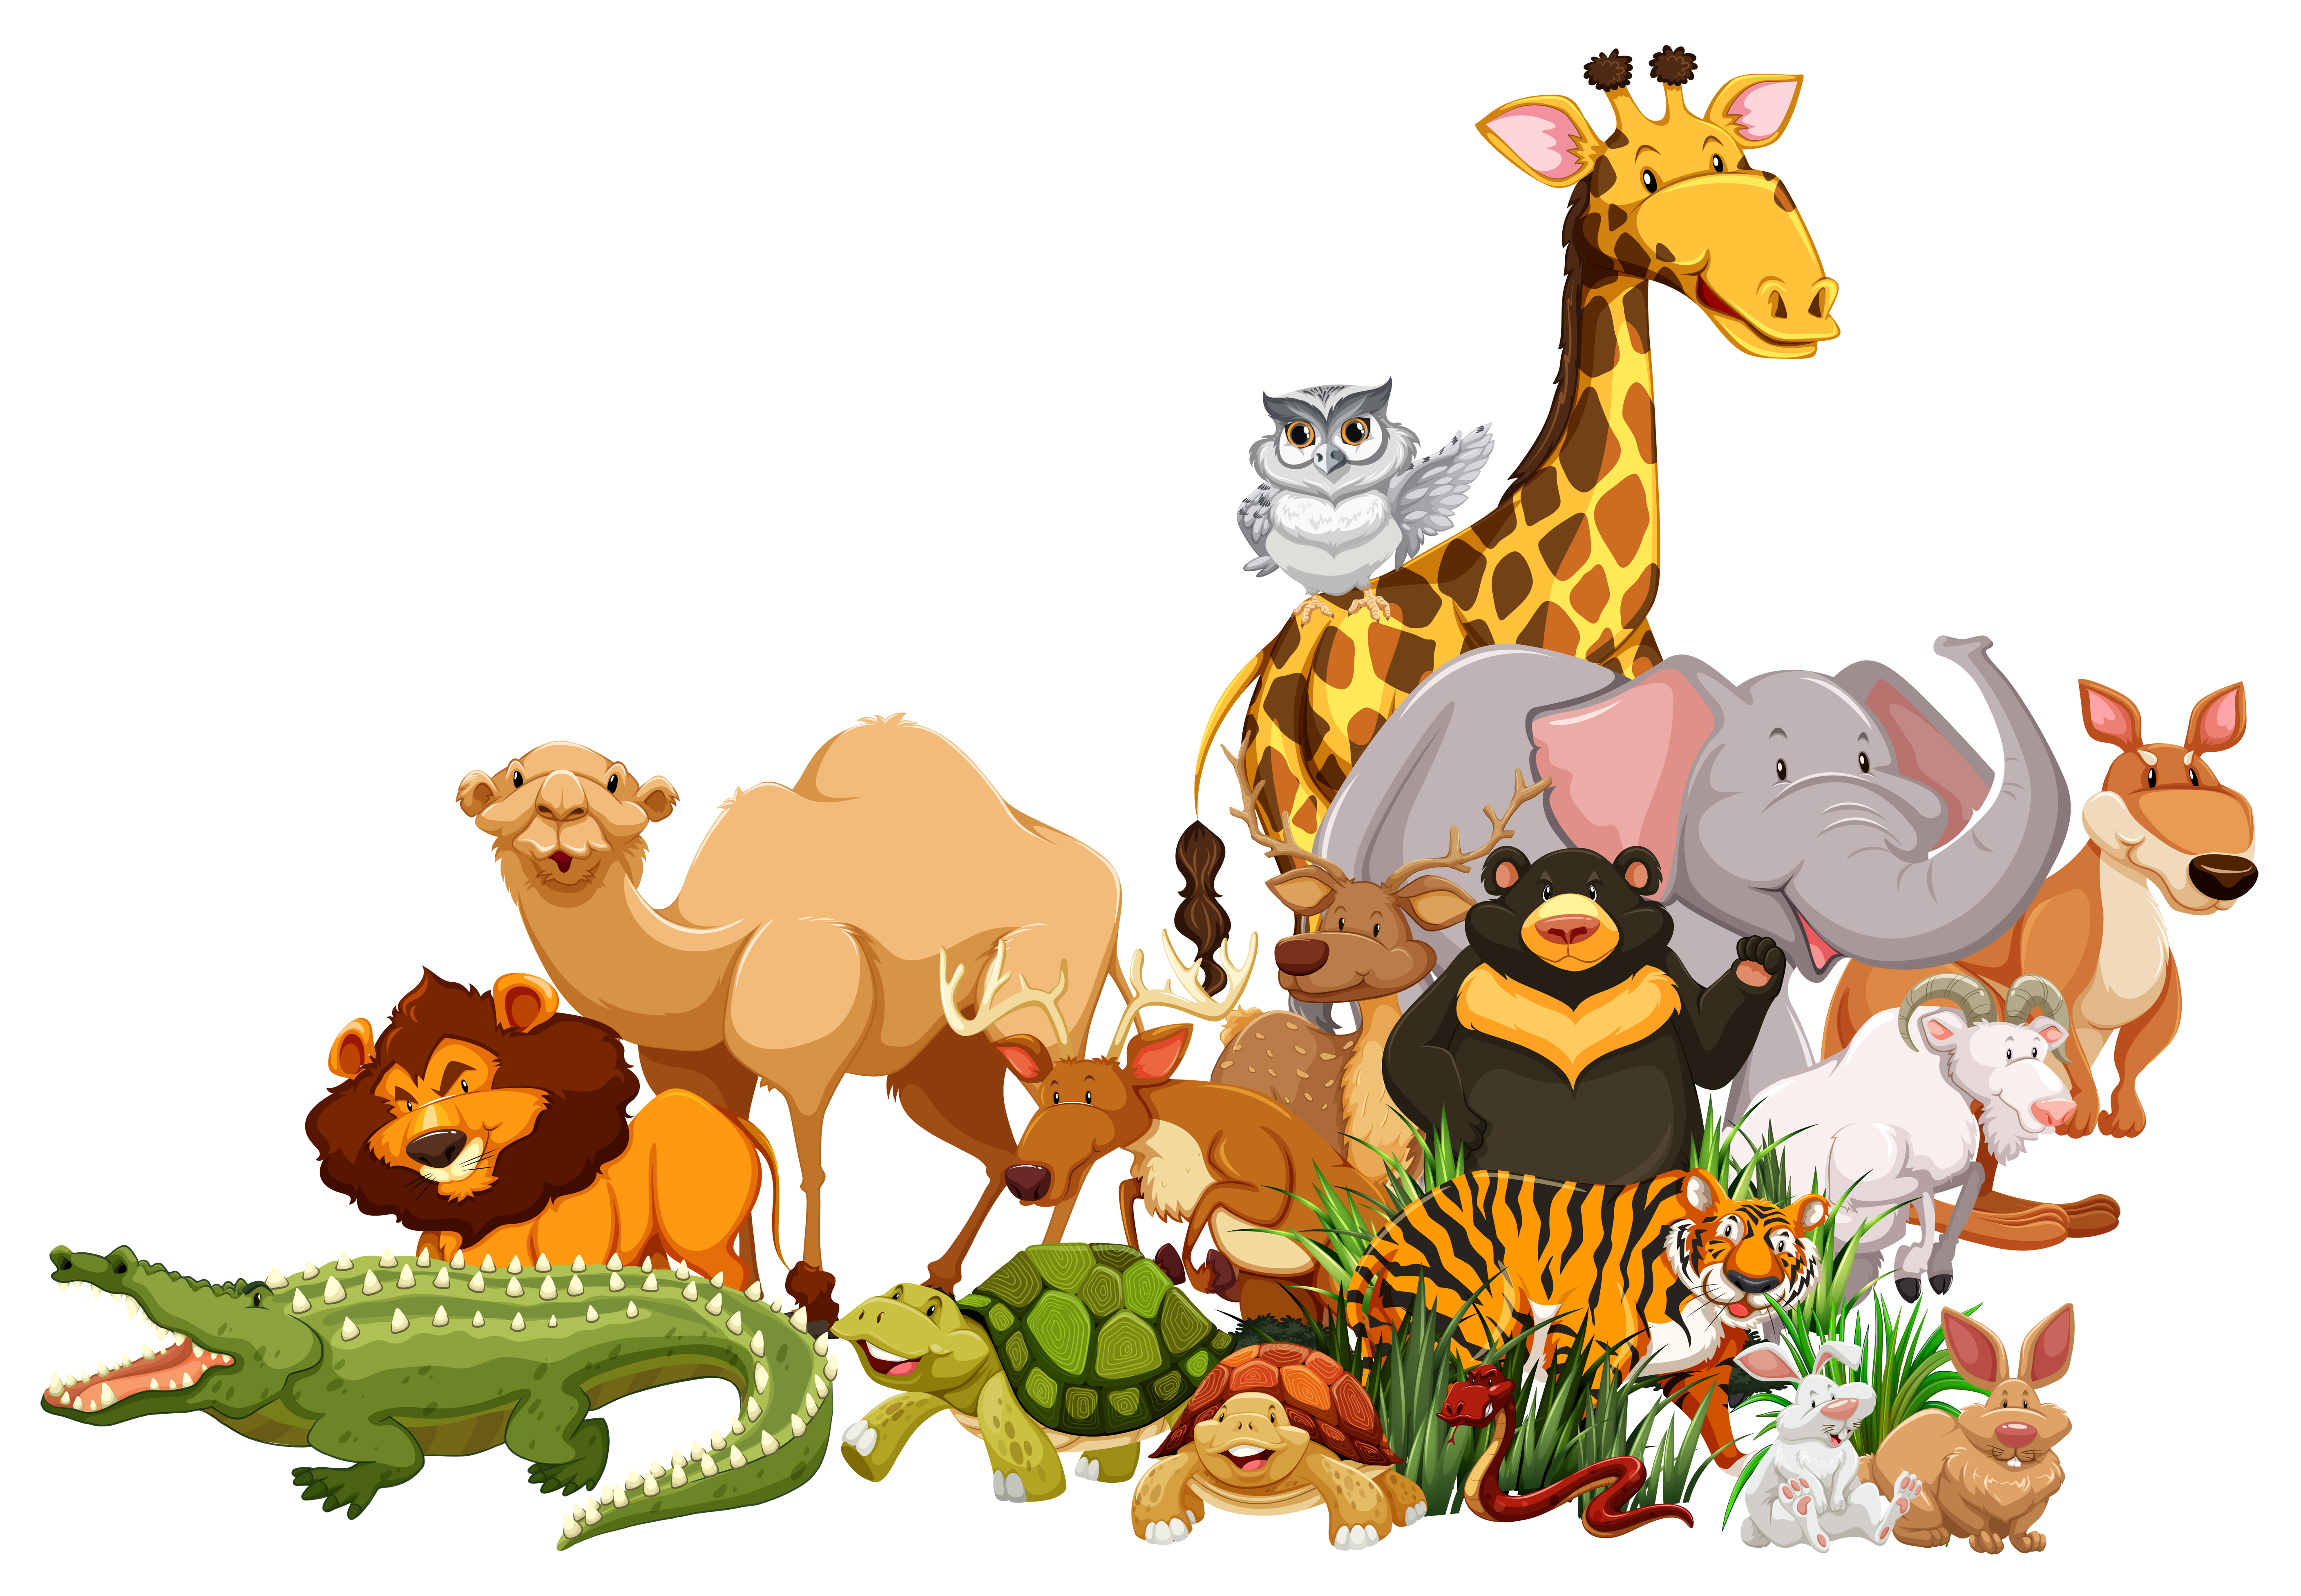 animals together wild different types clipart animal vector illustration cartoon clip zoo graphics vecteezy drawings vectors drawing camel cliparts cute